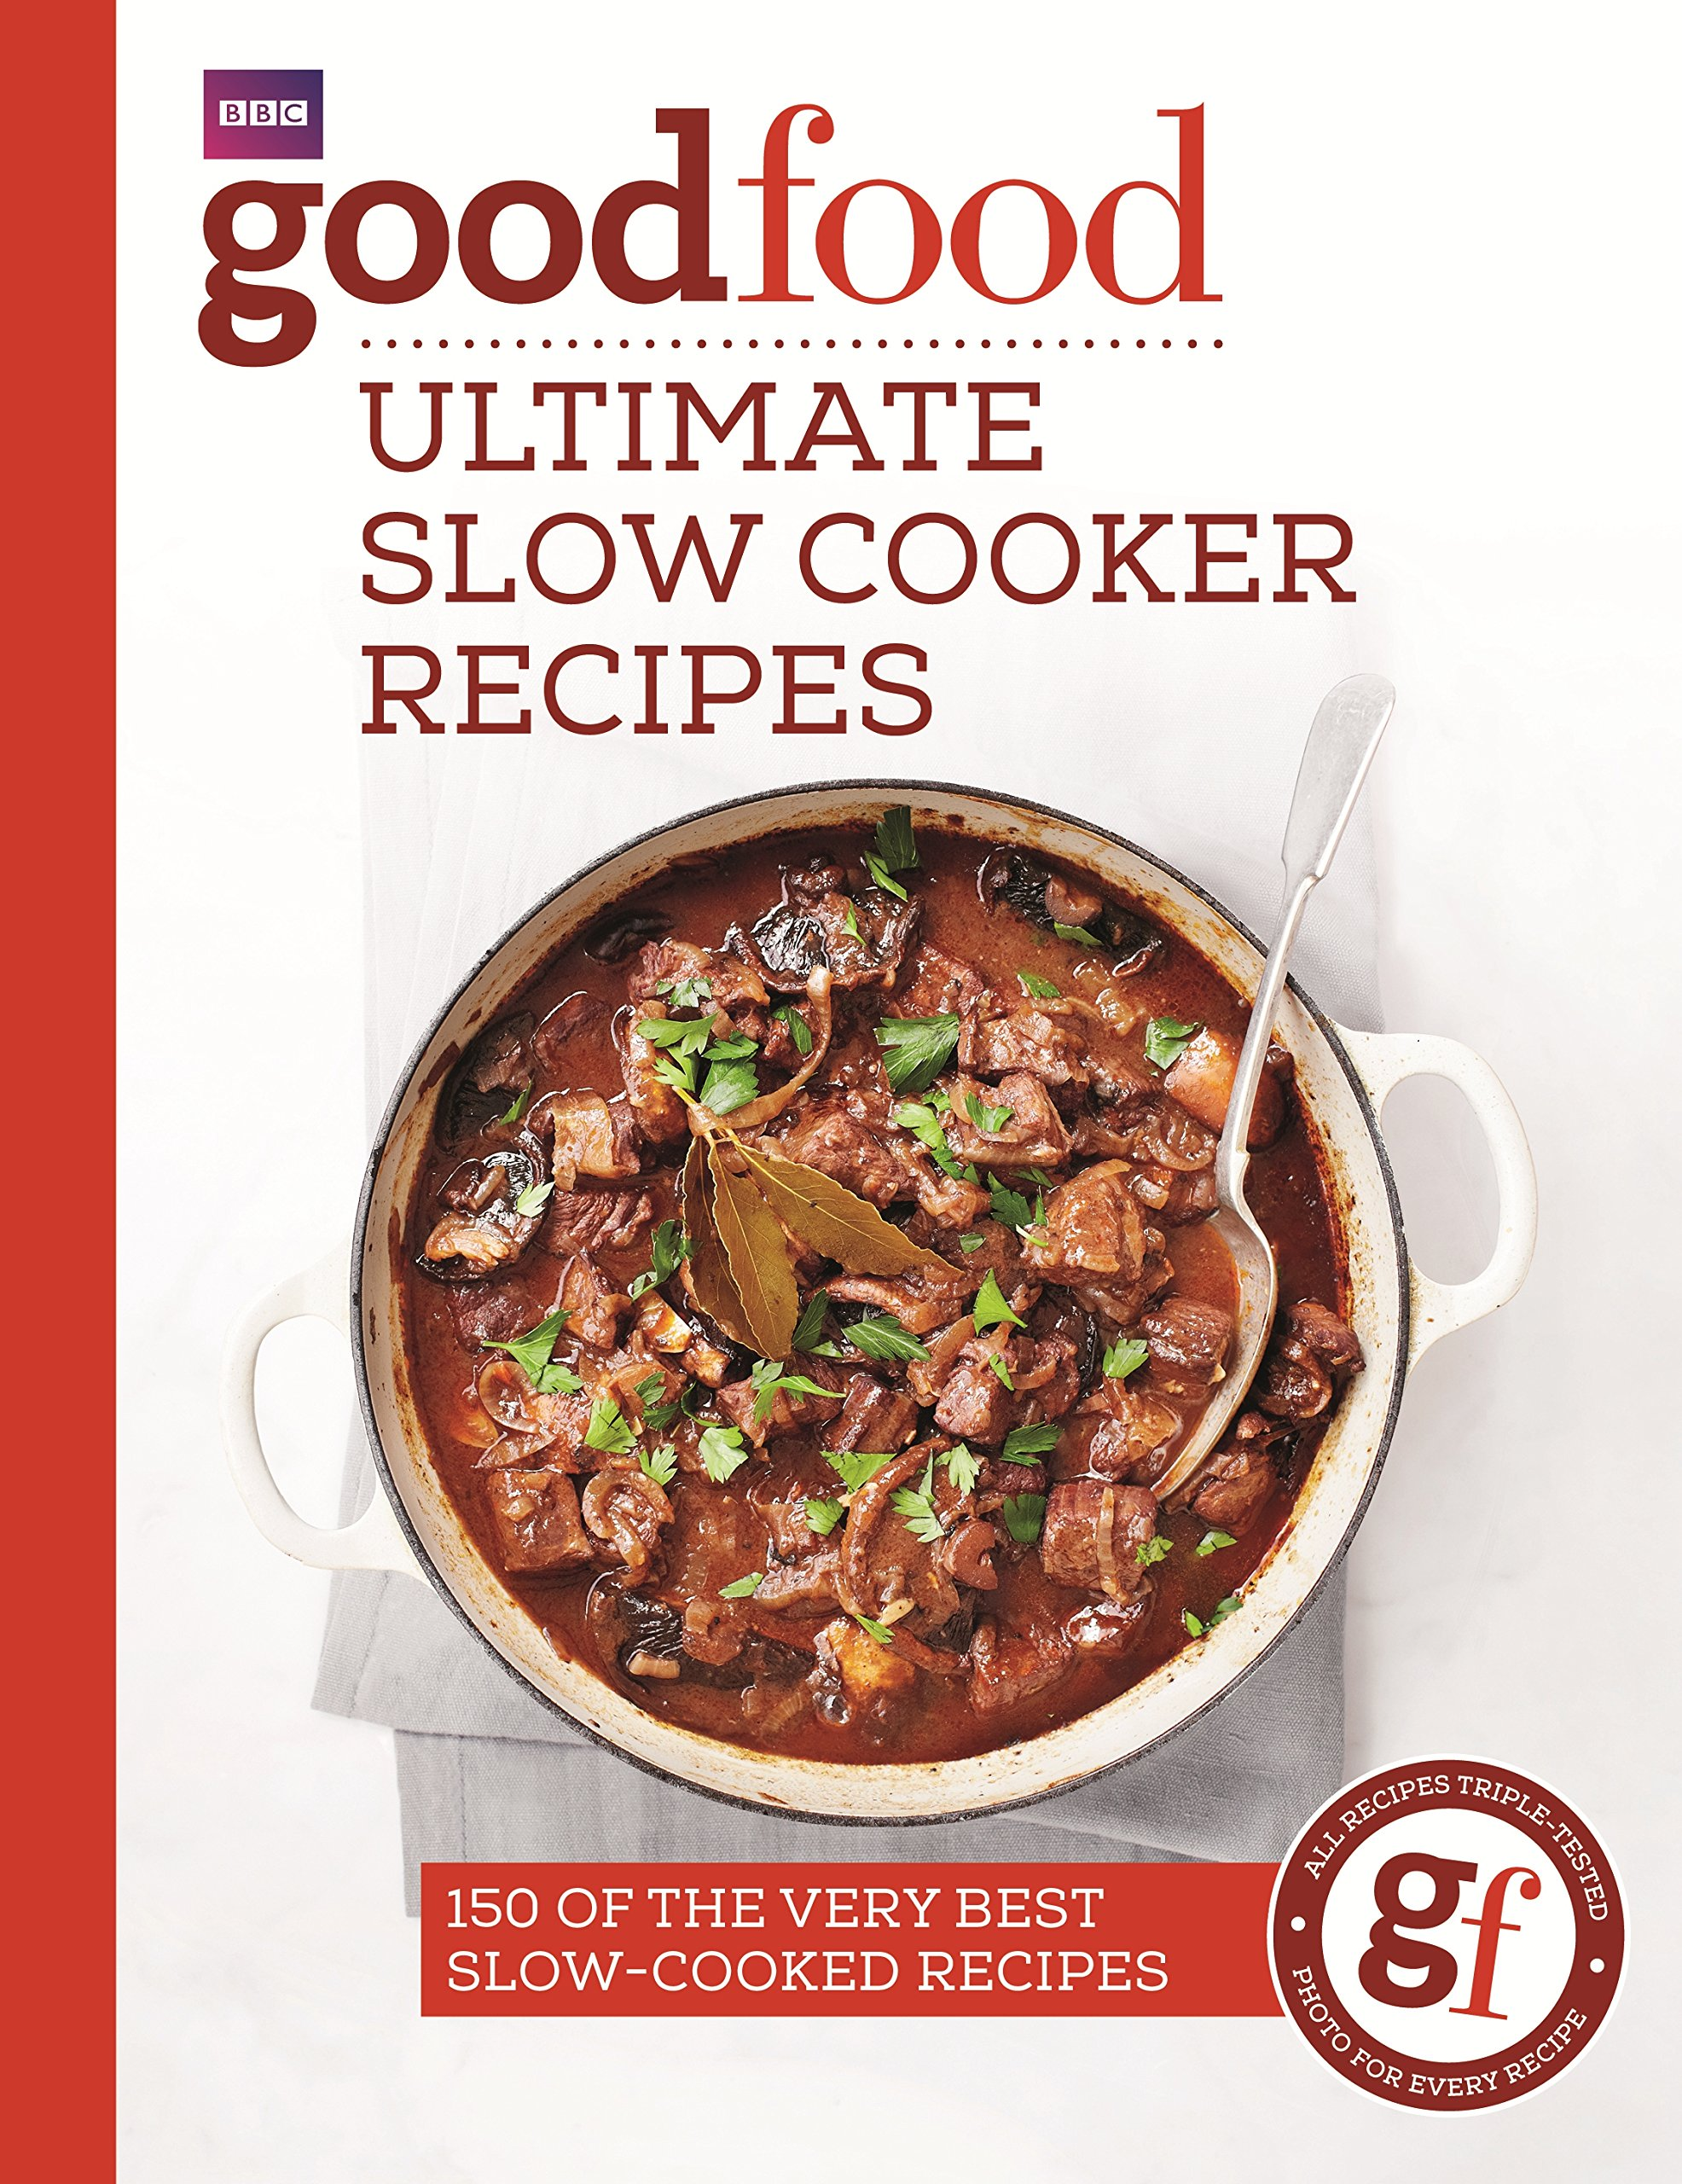 Good Food: Ultimate Slow Cooker Recipes 2